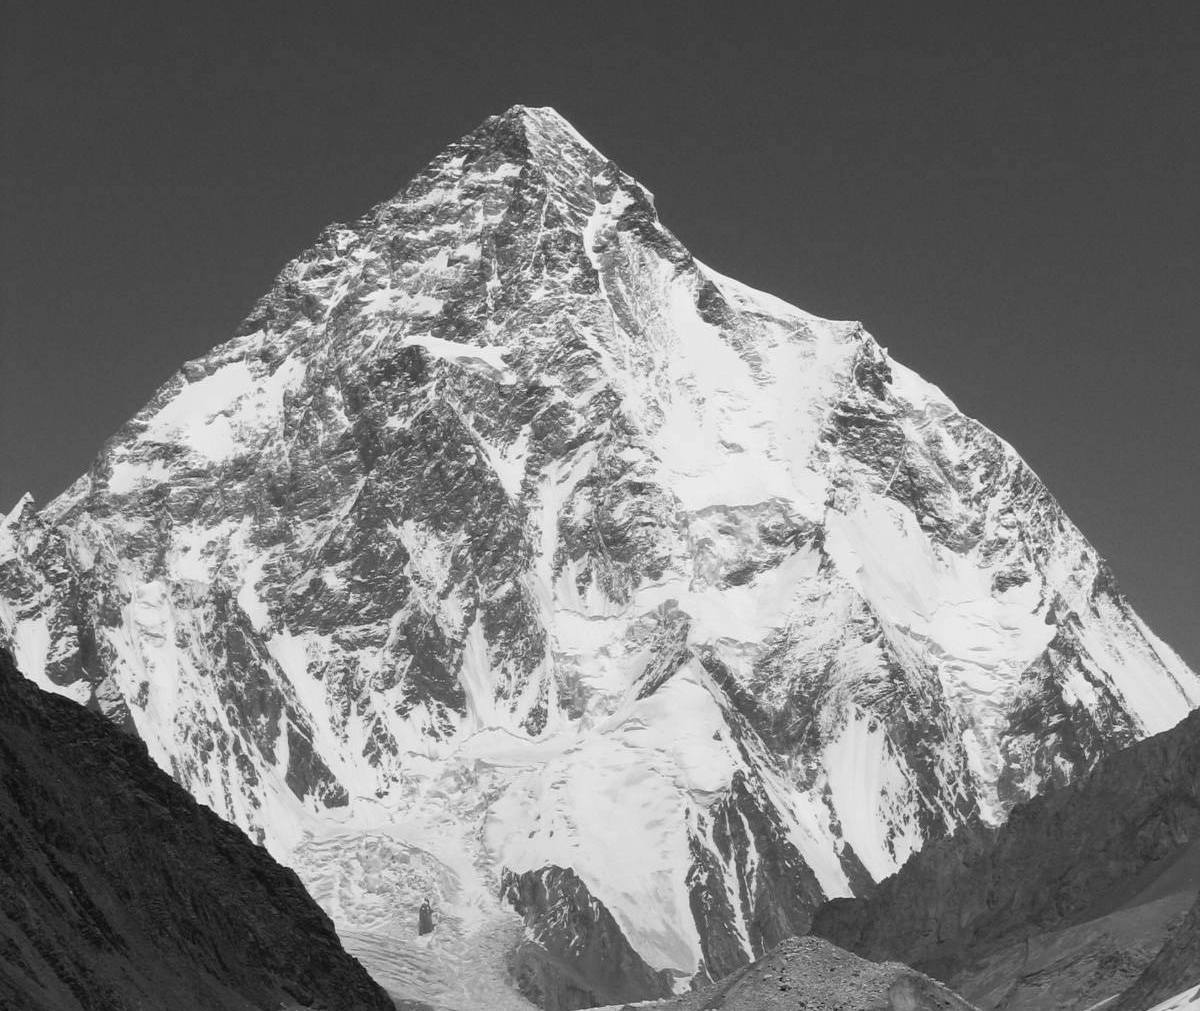 K2 (8611m) is pictured here in summer. The Abruzzi Spur—the route used by all the expeditions this winter—follows the right-hand skyline. [Photo] Svy123, Wikimedia Commons